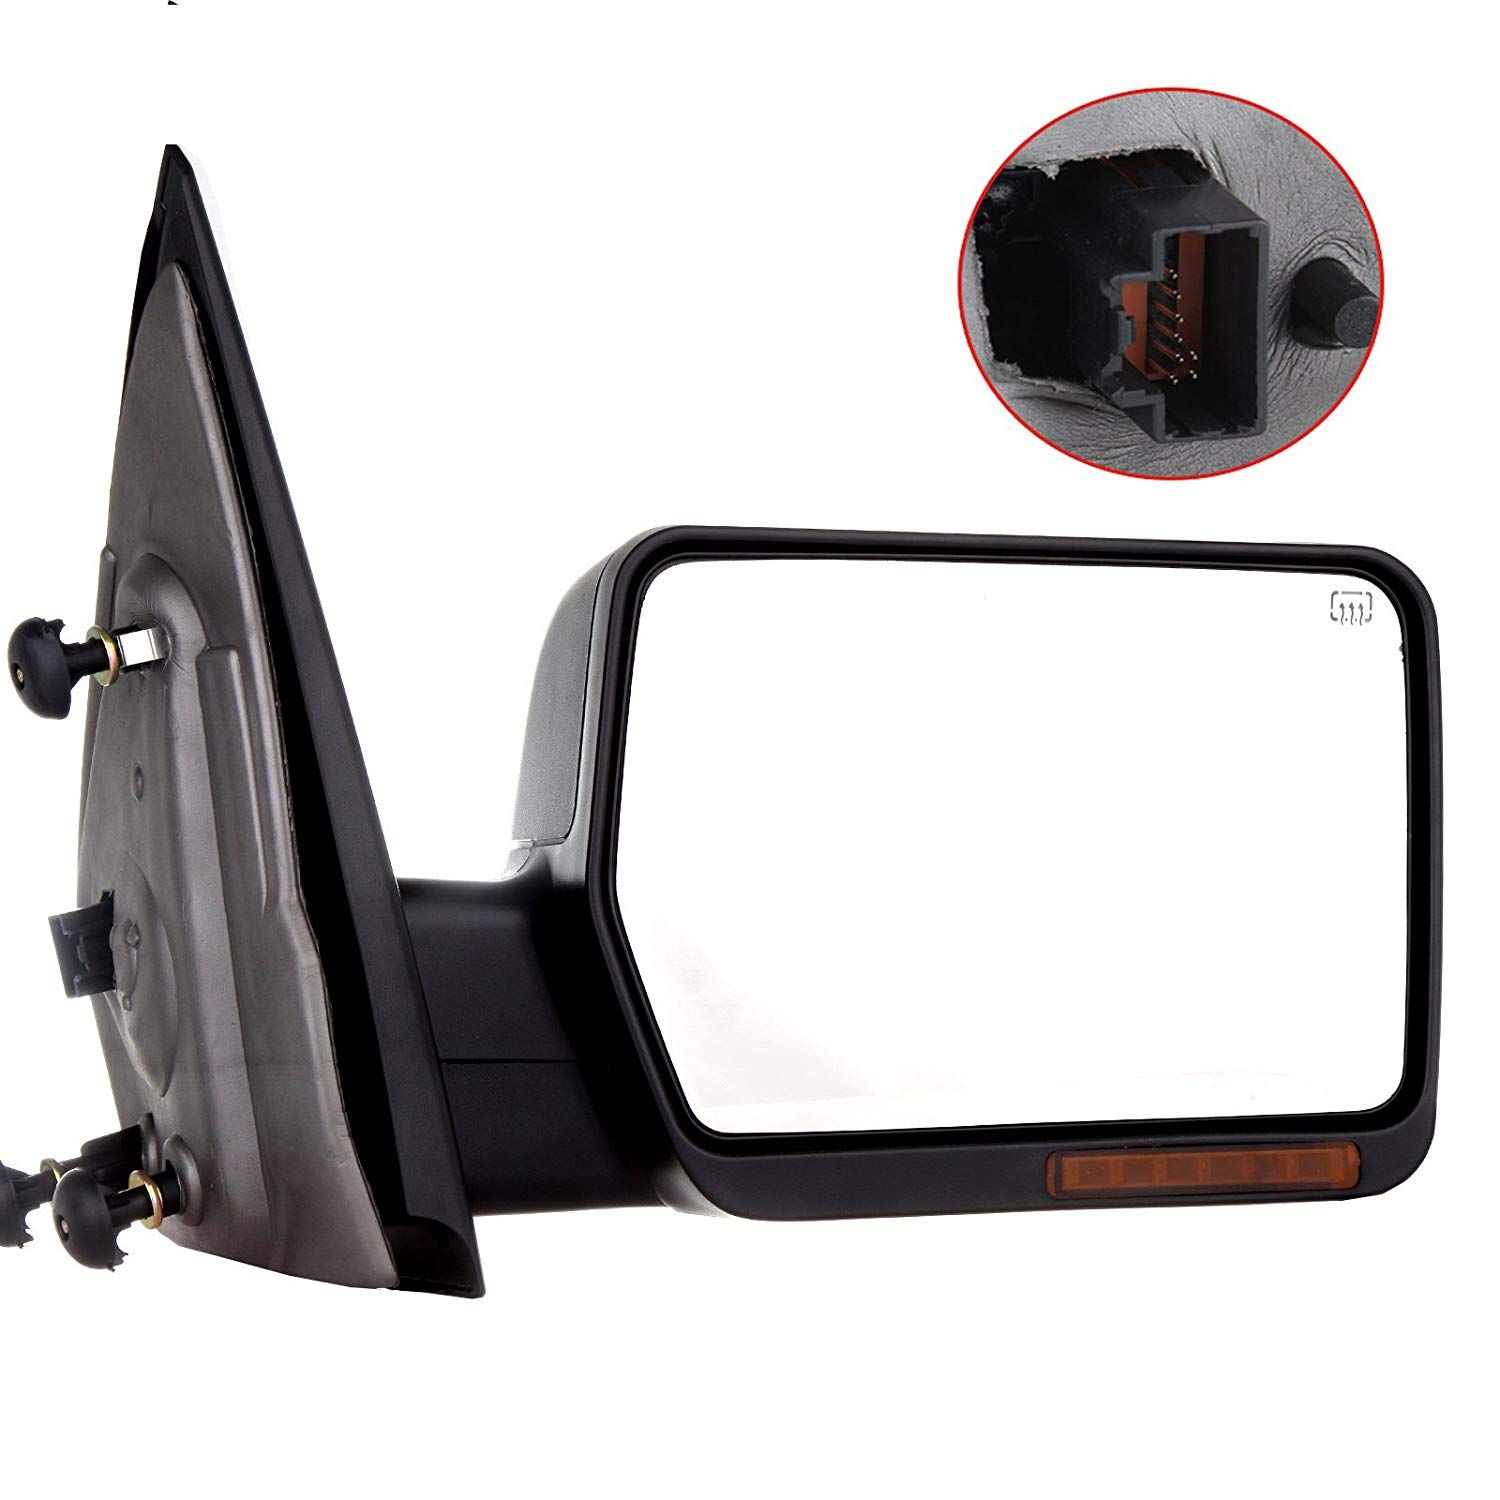 Towing Mirror For 2004 06 Ford F 150 Rear View Mirror Automotive Exterior Mirrors With Power Heated Front Led Signals Passenger Side Ford F150 Towing Mirror